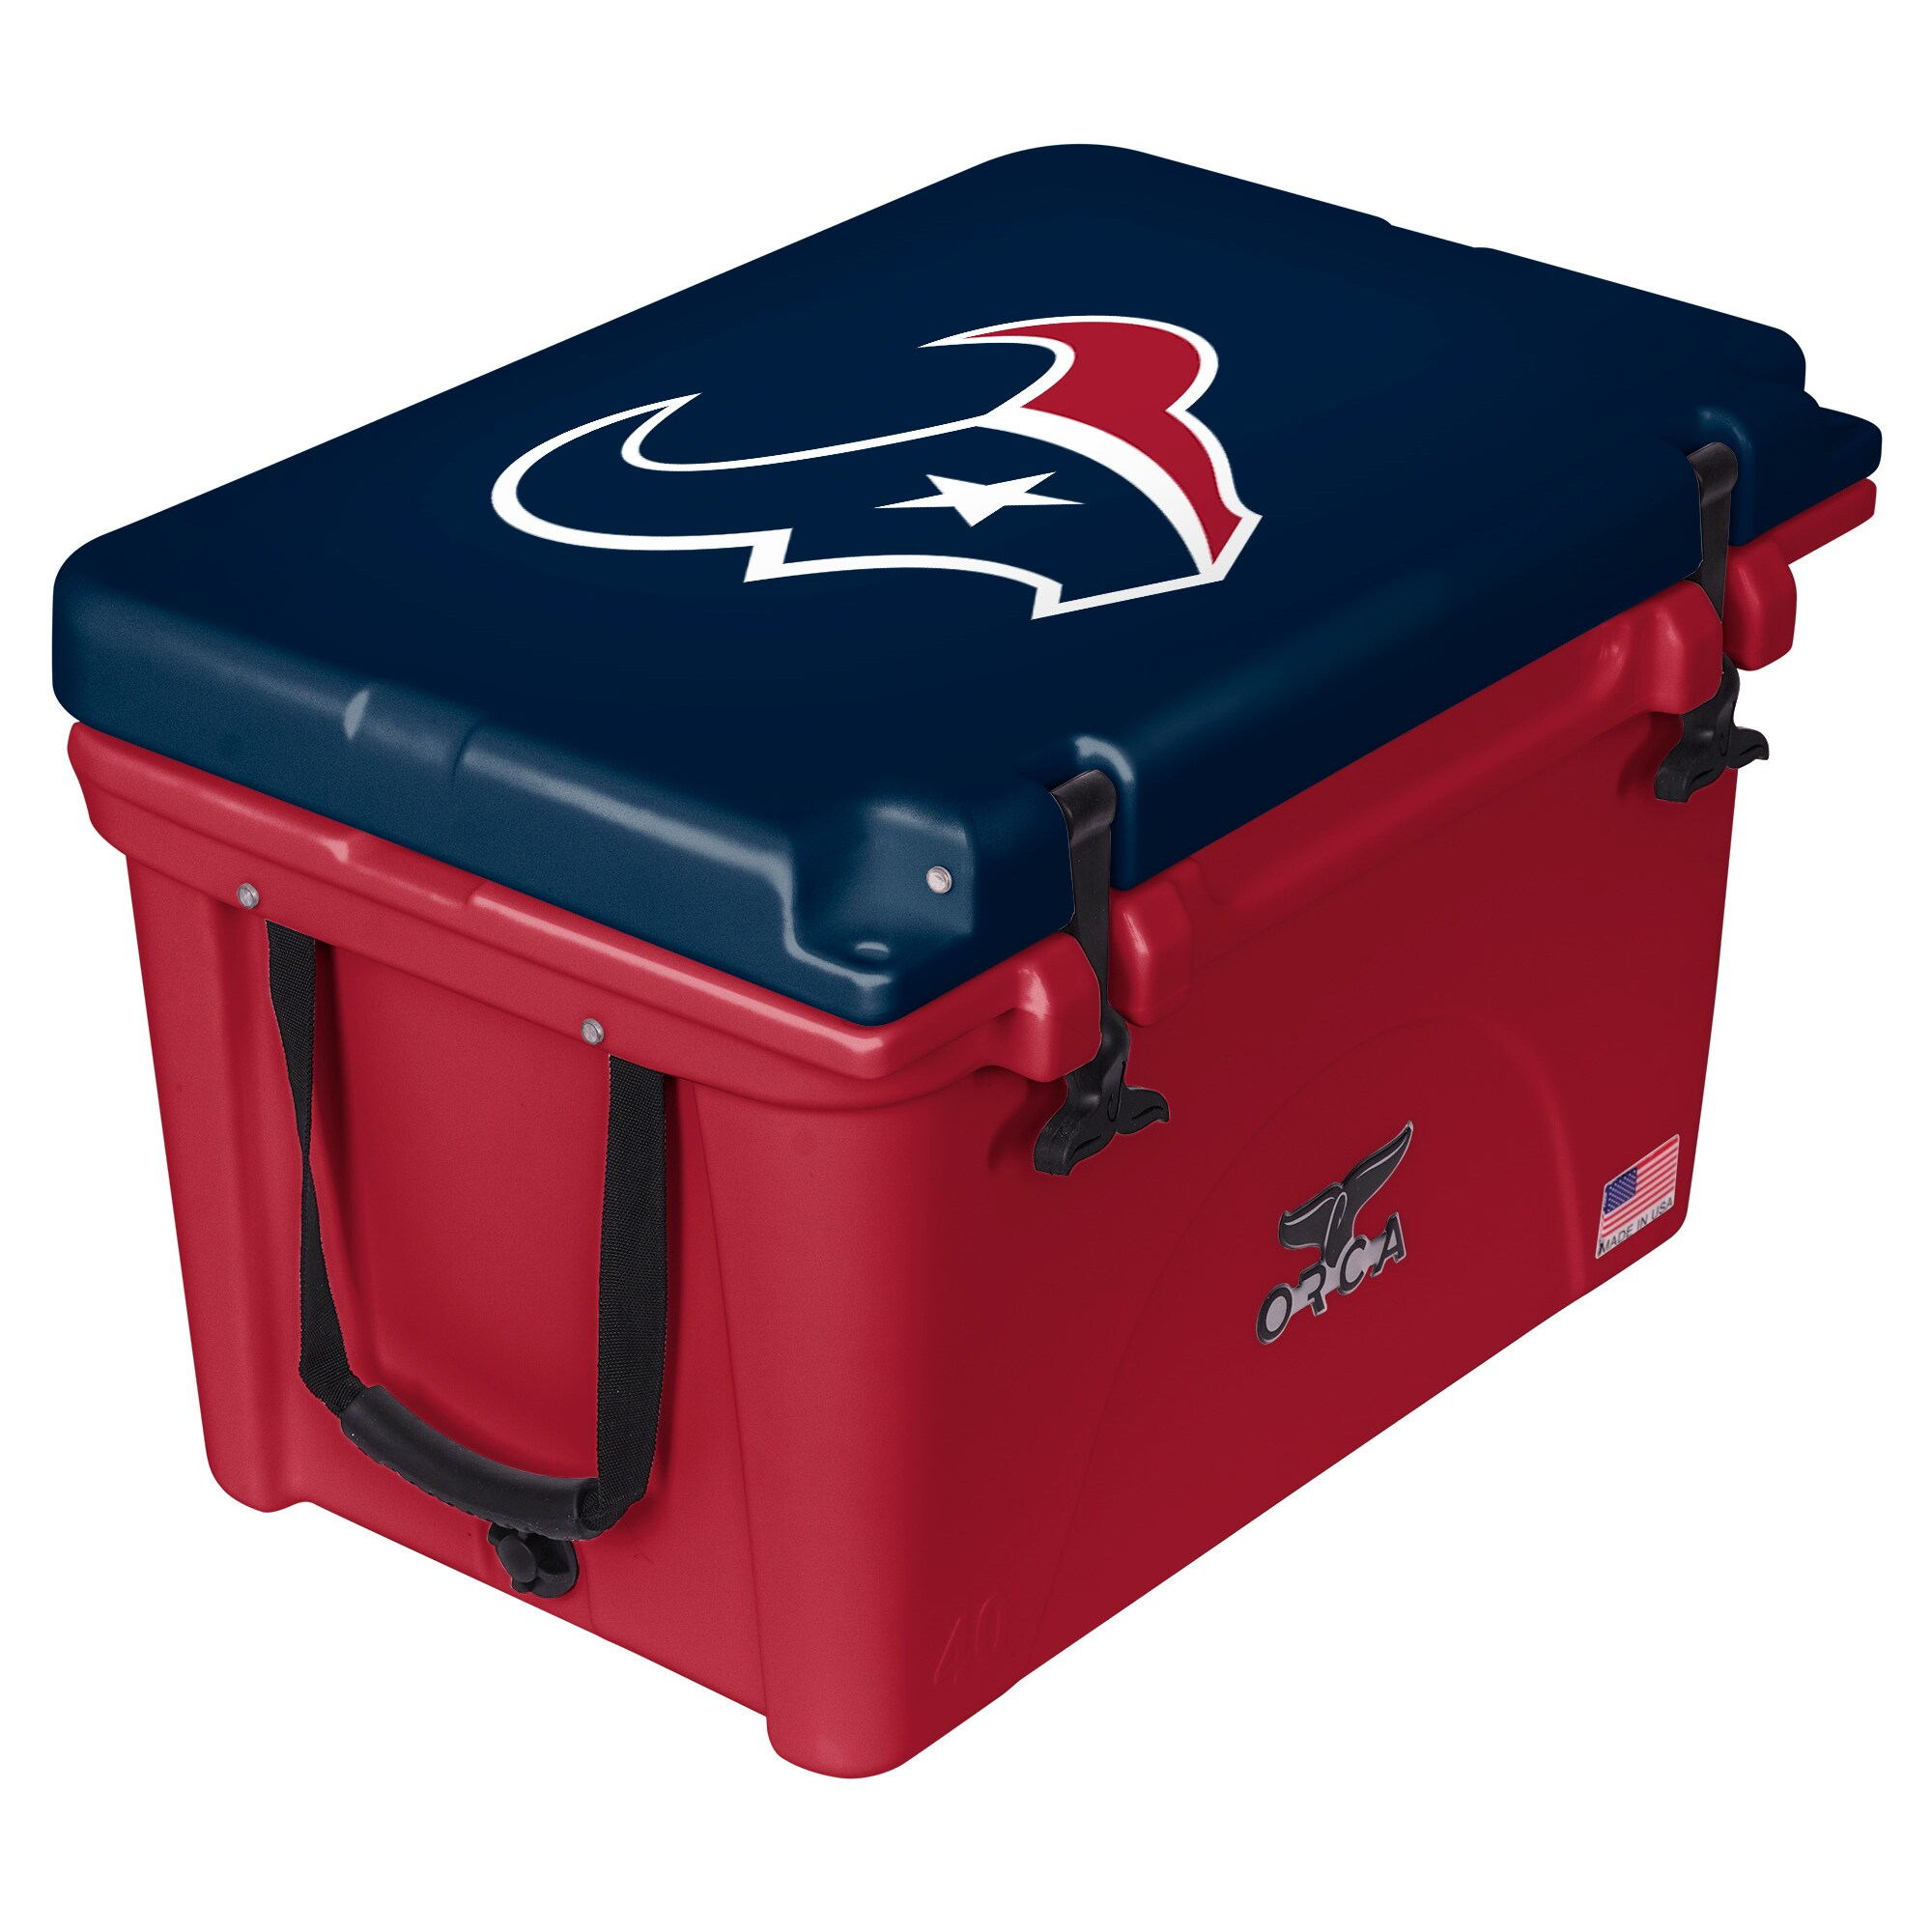 Houston Texans ORCA 40-Quart Hard-Sided Cooler - Red/Navy